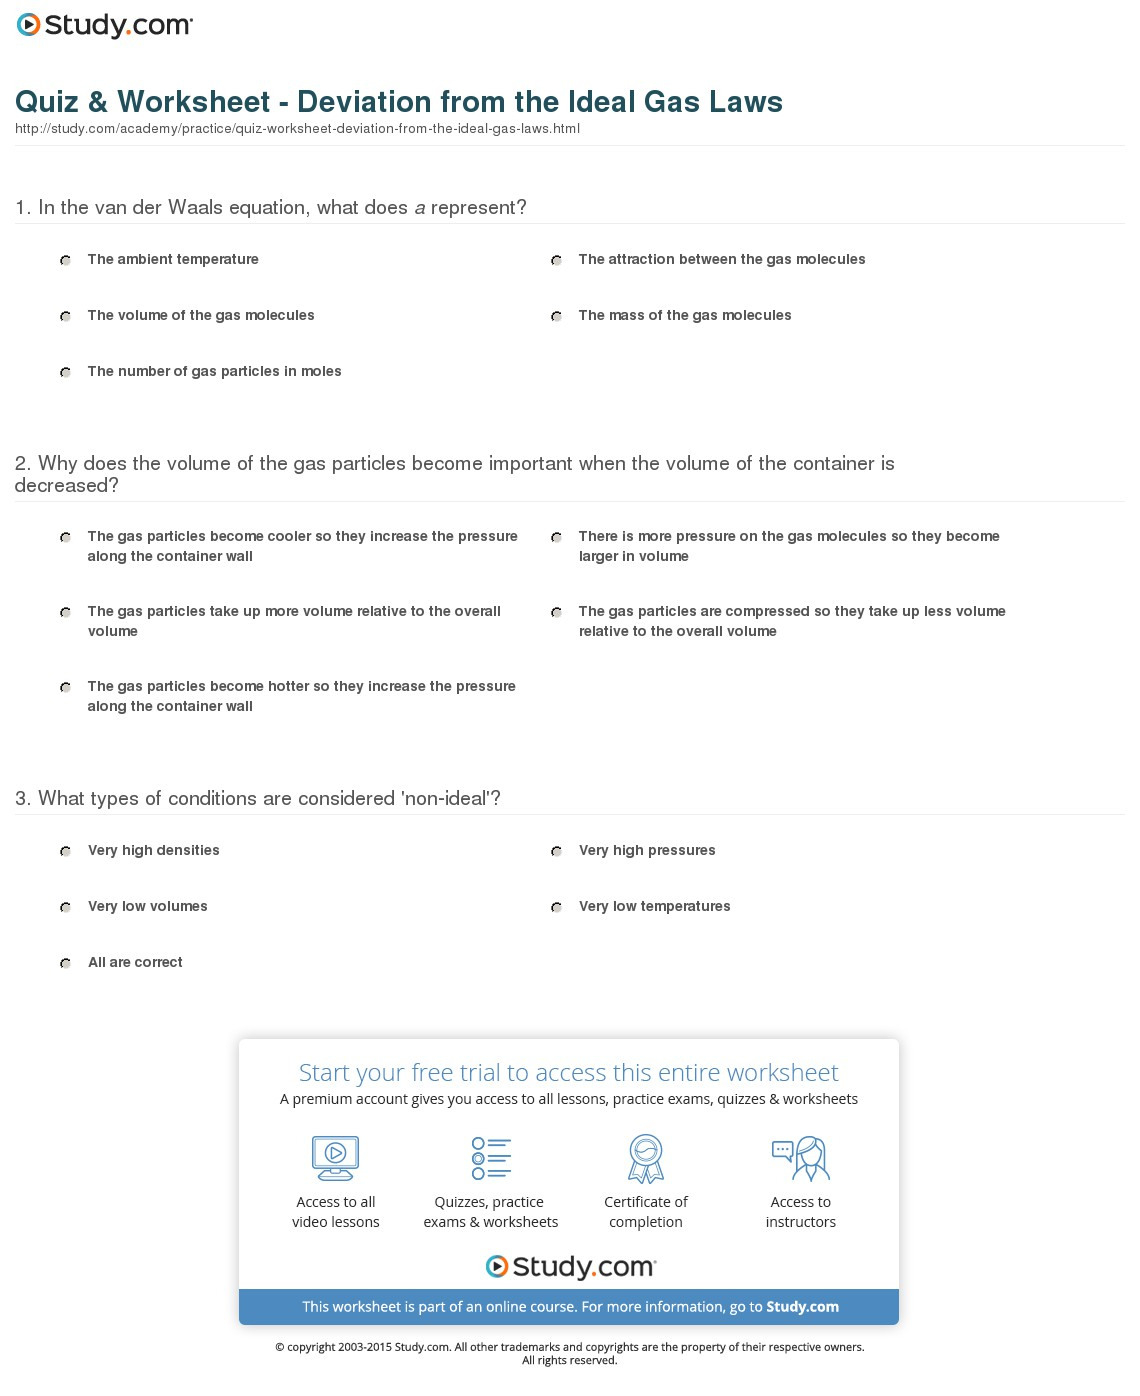 Quiz Worksheet Deviation From The Ideal Gas Laws Study